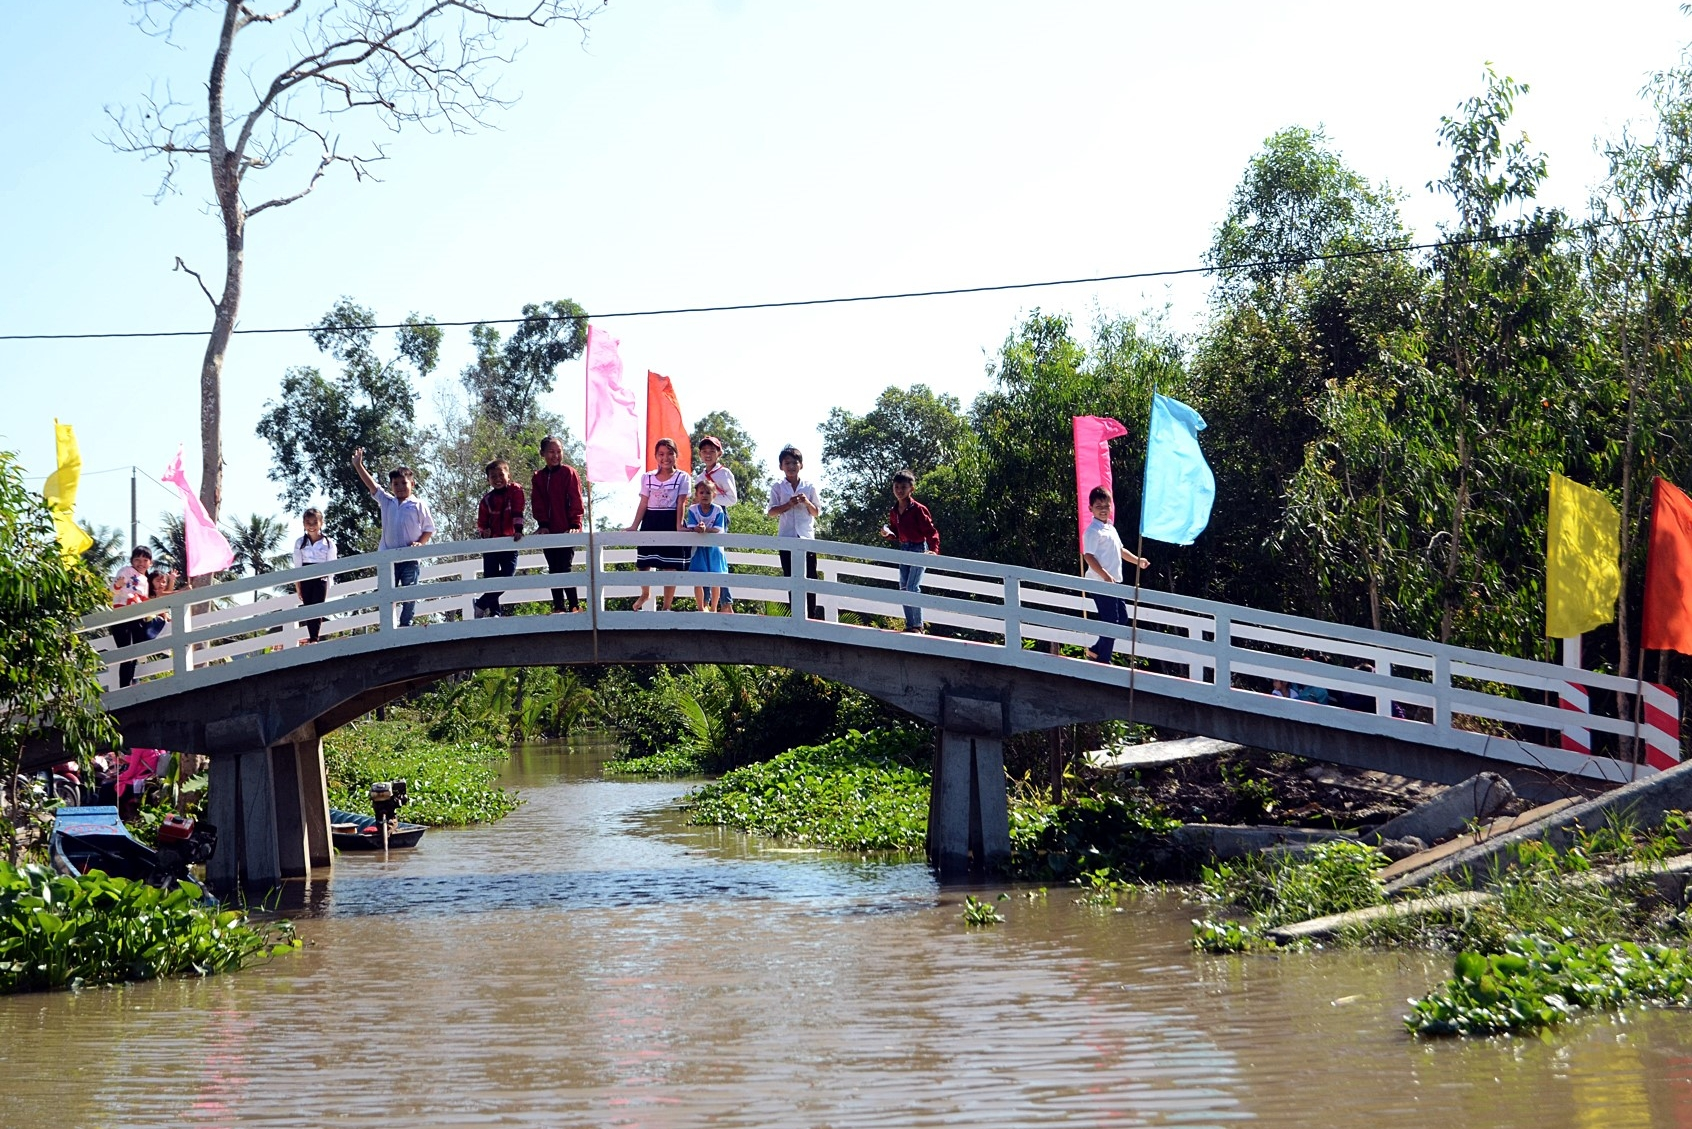 The new 5-tonne, 30 m concrete bridge, opened in 2019, has transformed the life of local villagers…